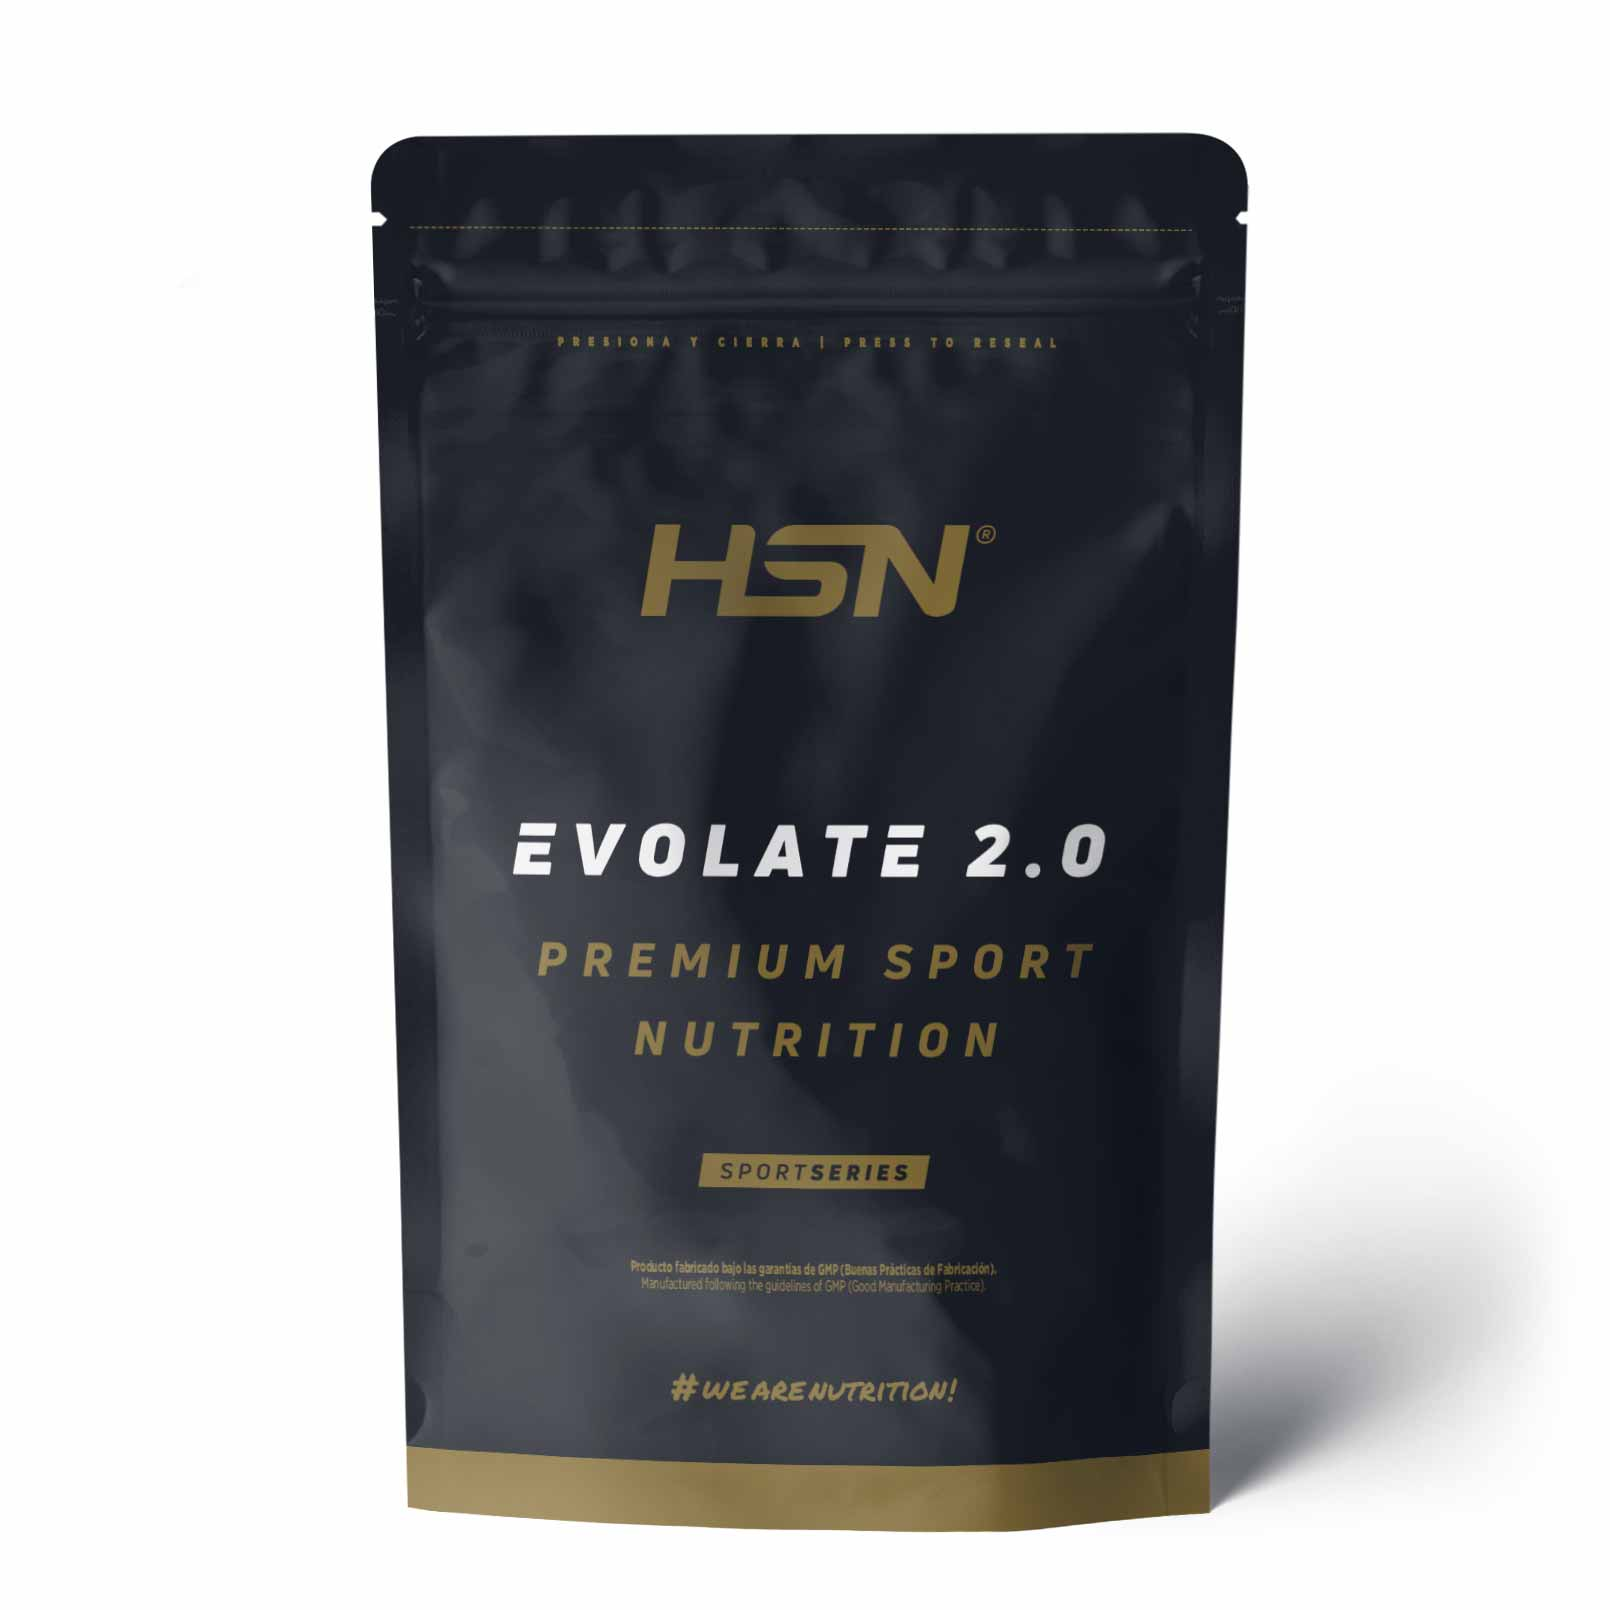 Evolate 2.0 (Whey Isolate CFM) de HSNsports